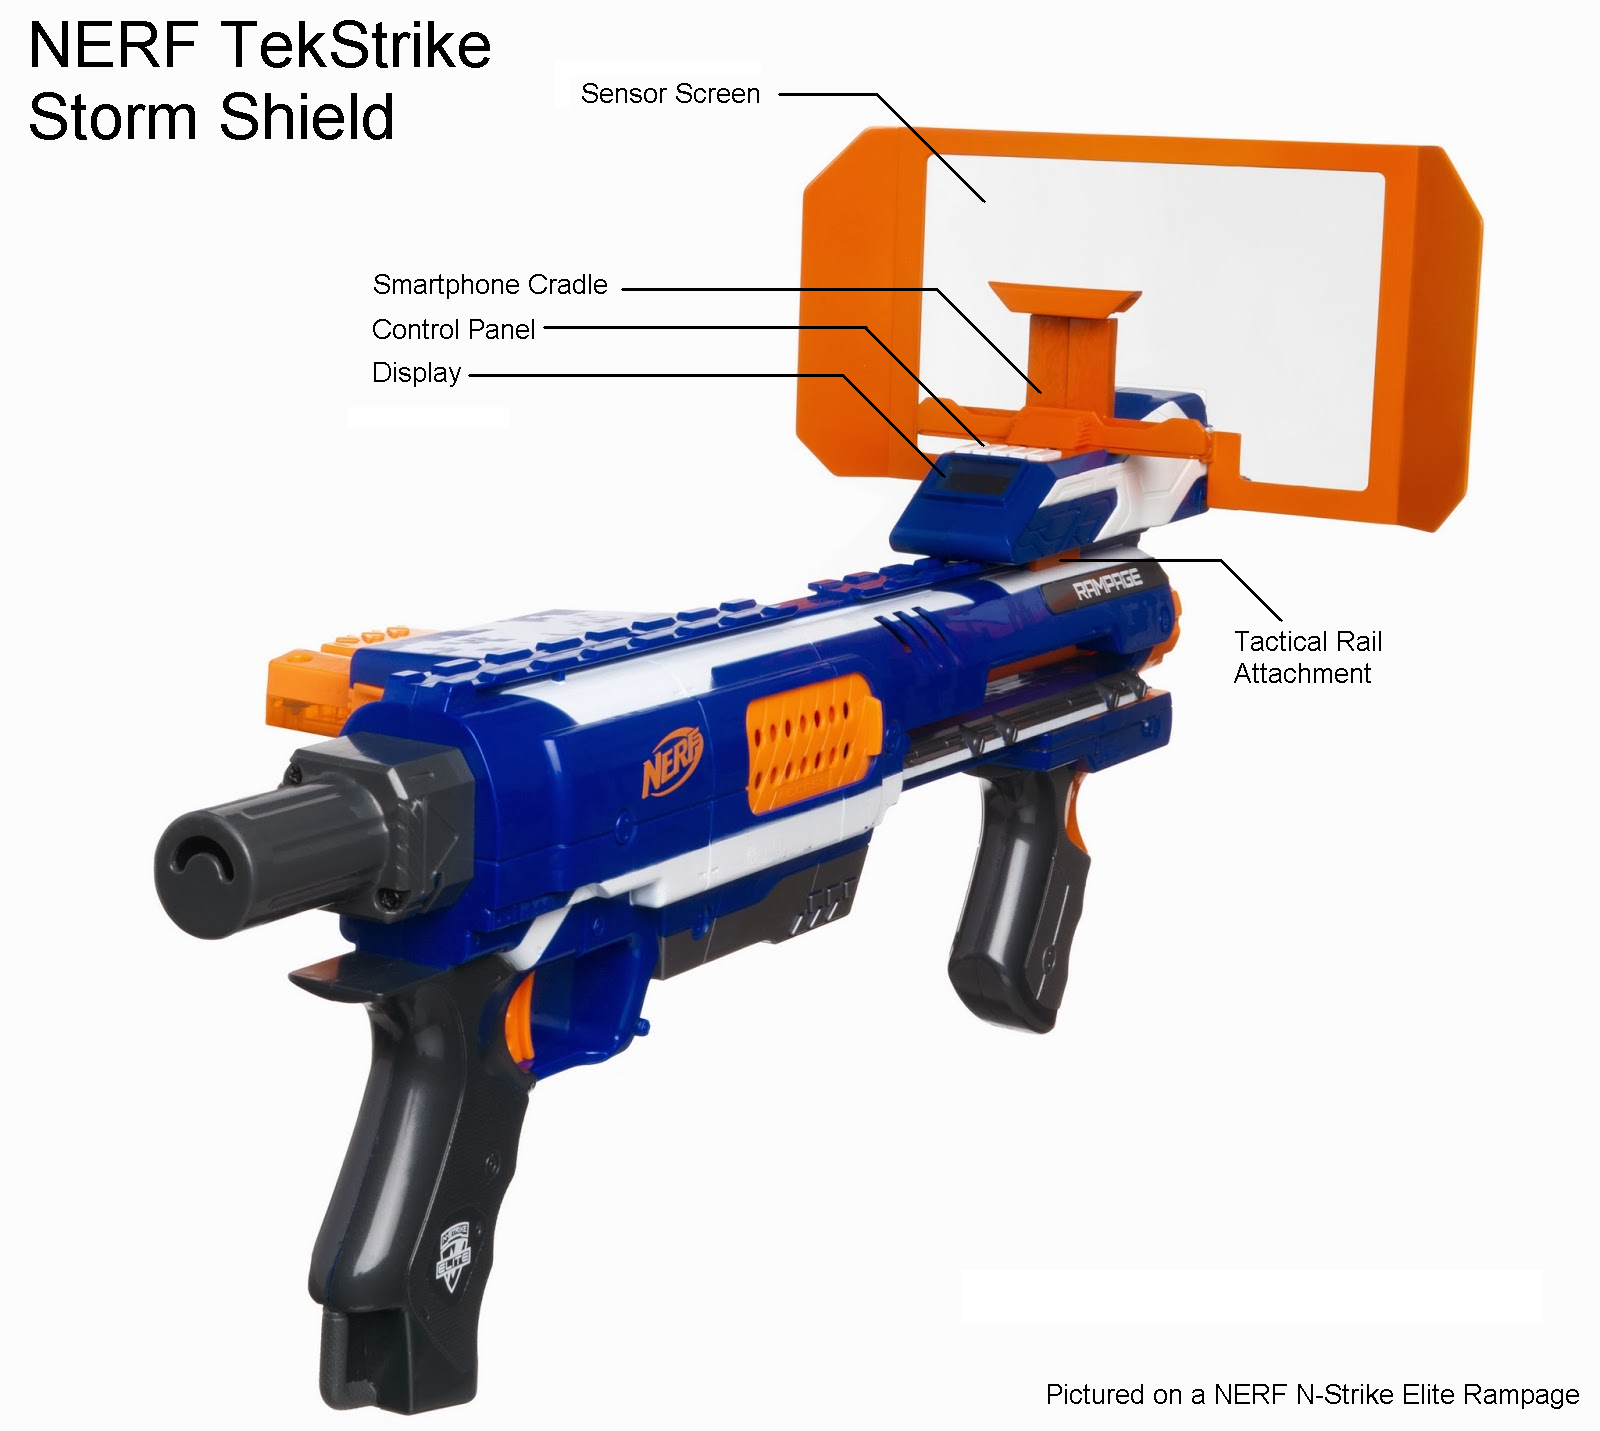 Laser Dart Nerf Tag is it Nerf Laser Tag Dart Maybe it s Dart Nerf Tag Laser Yeah that s gotta be it What s this I m talking about